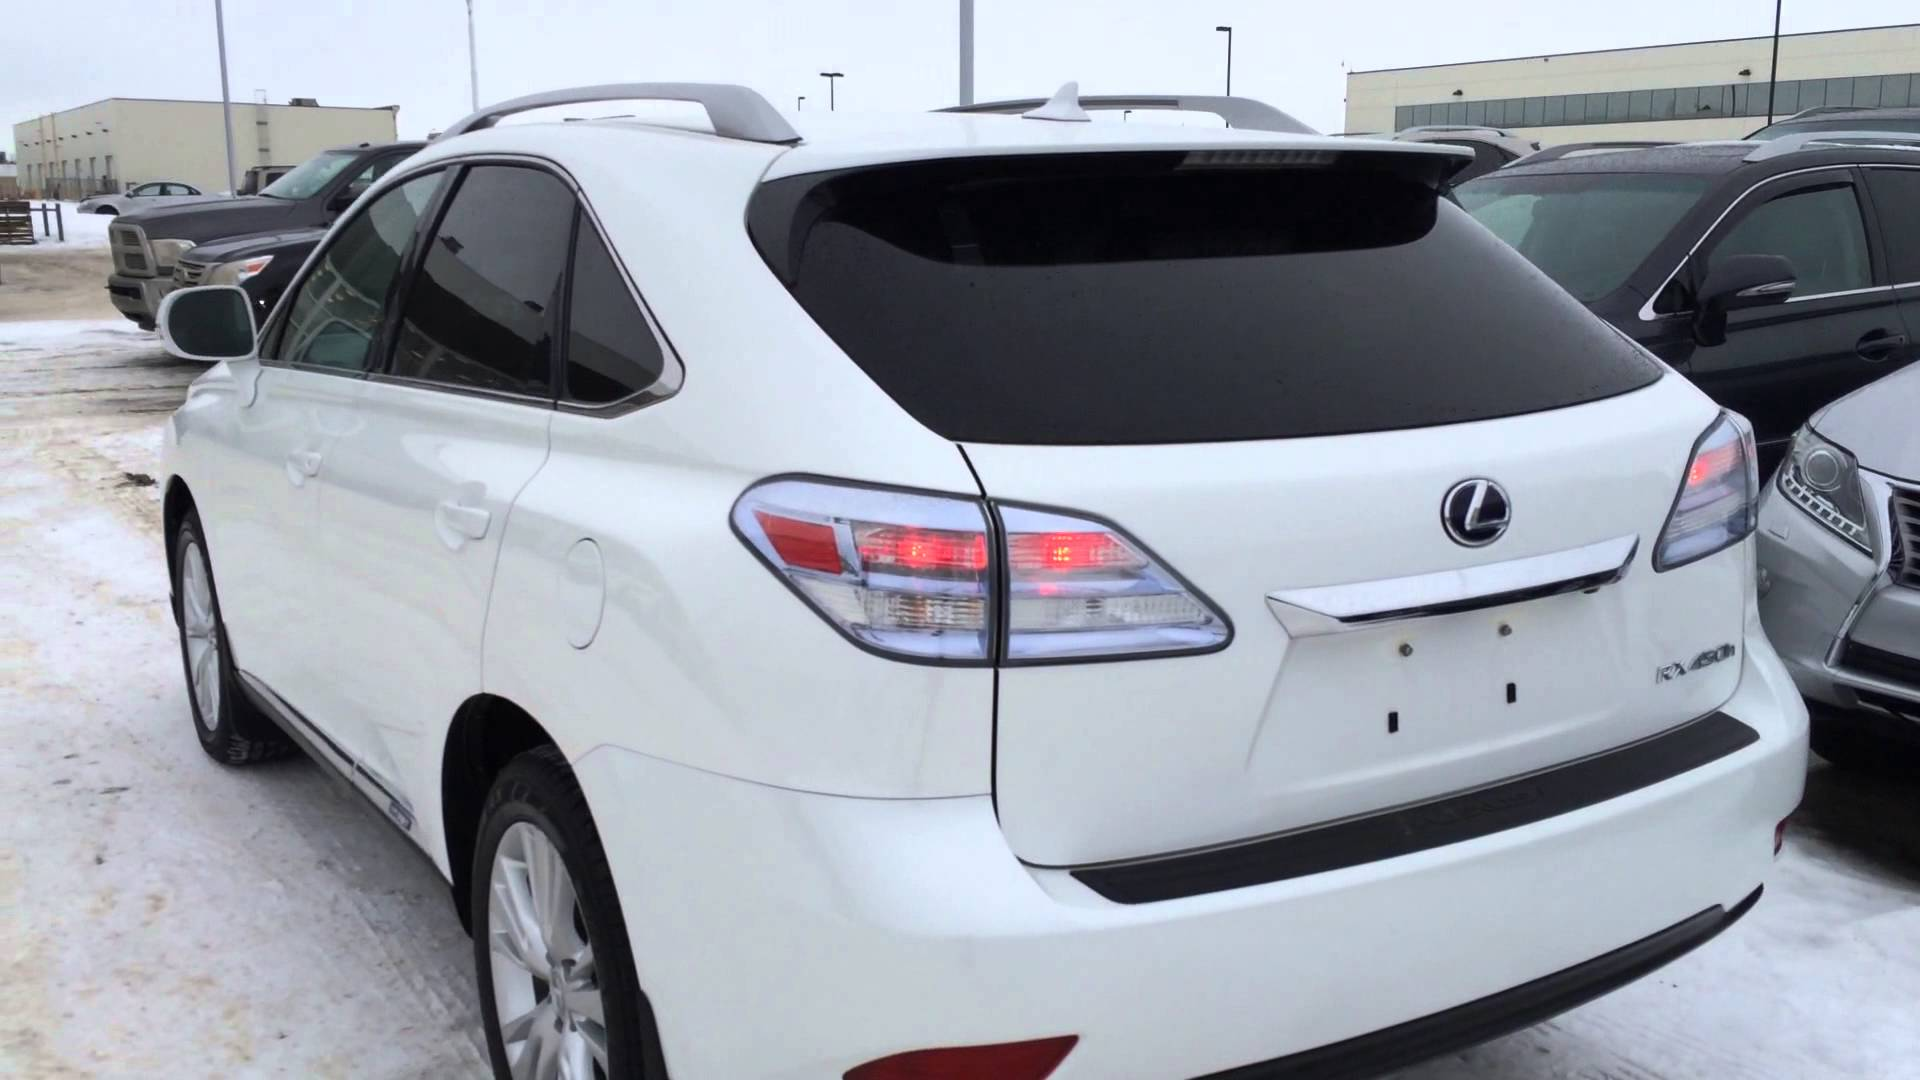 The 2012 Lexus Rx 450h Hybrid Suv Is As Popular As Ever Suv Blog